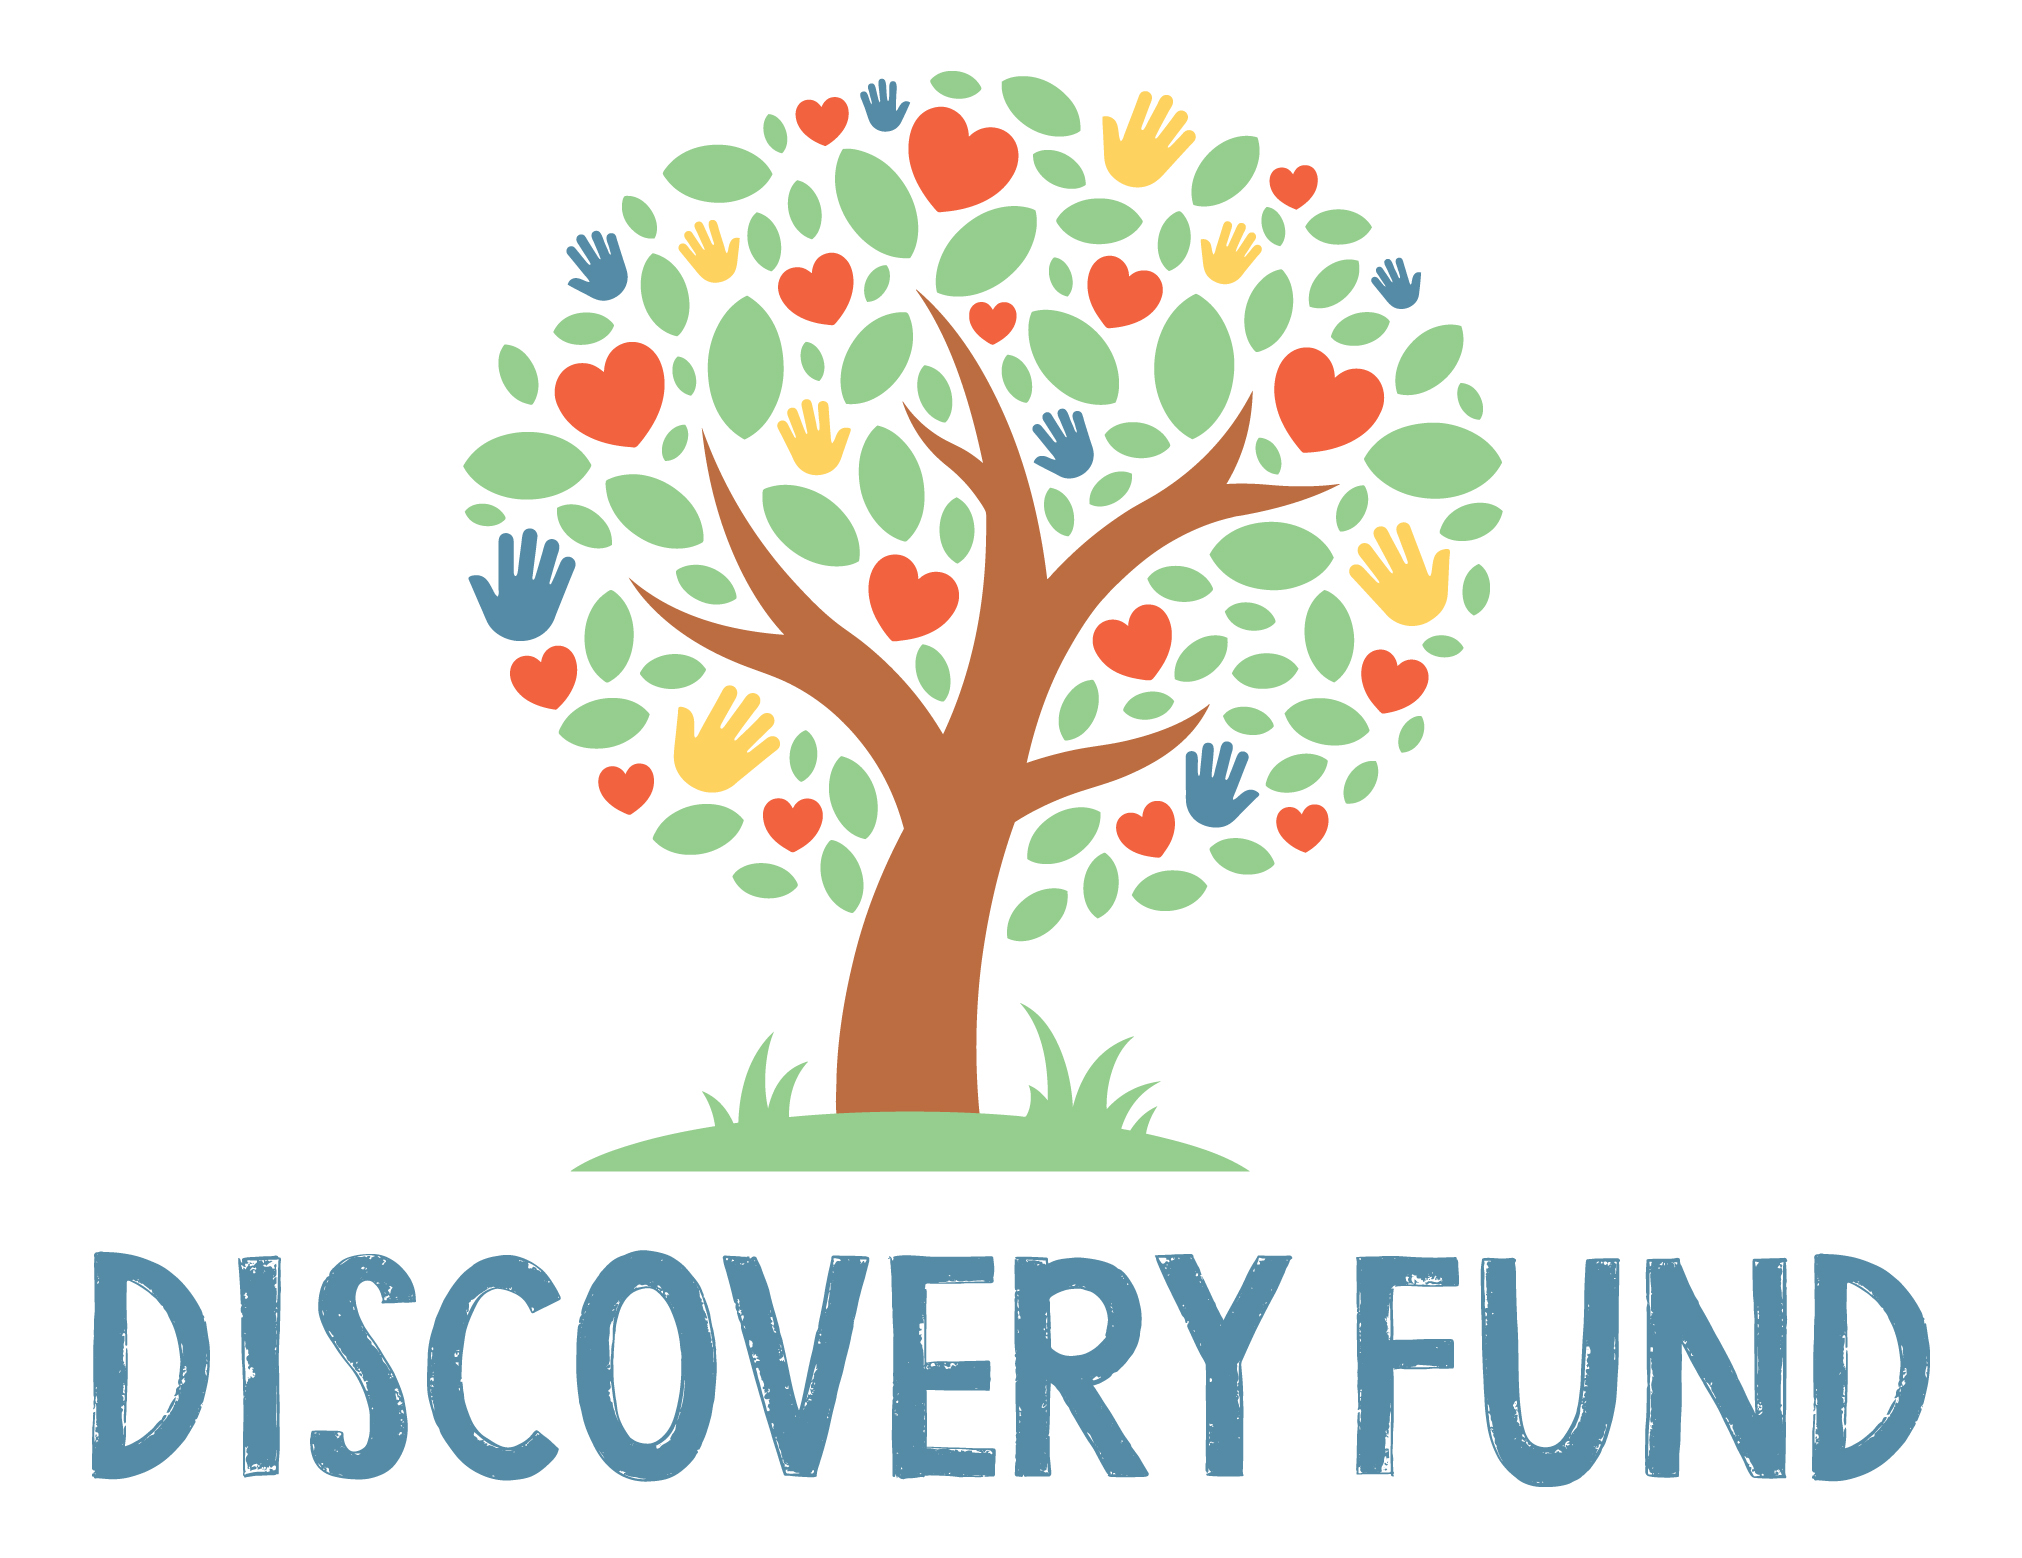 The Discovery Fund is a giving program supporting the School for enhanced resources and programs.